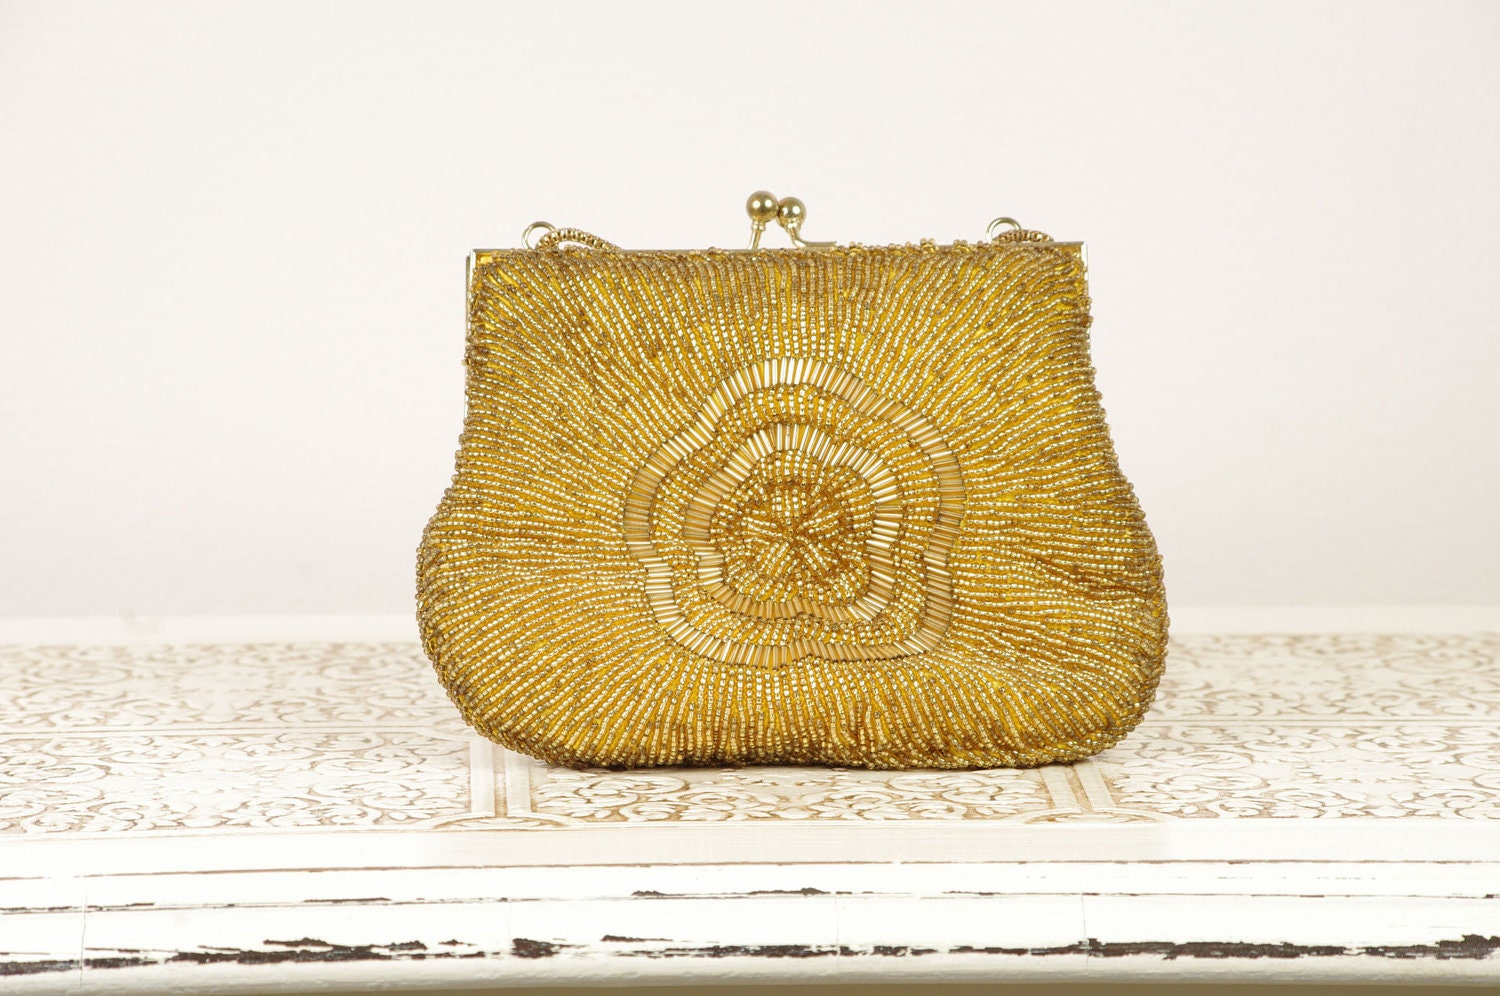 Vintage Gold Evening Bag Clutch - Beaded Purse - Made in Hong Kong by La Regale - DuryeaPlaceDesigns